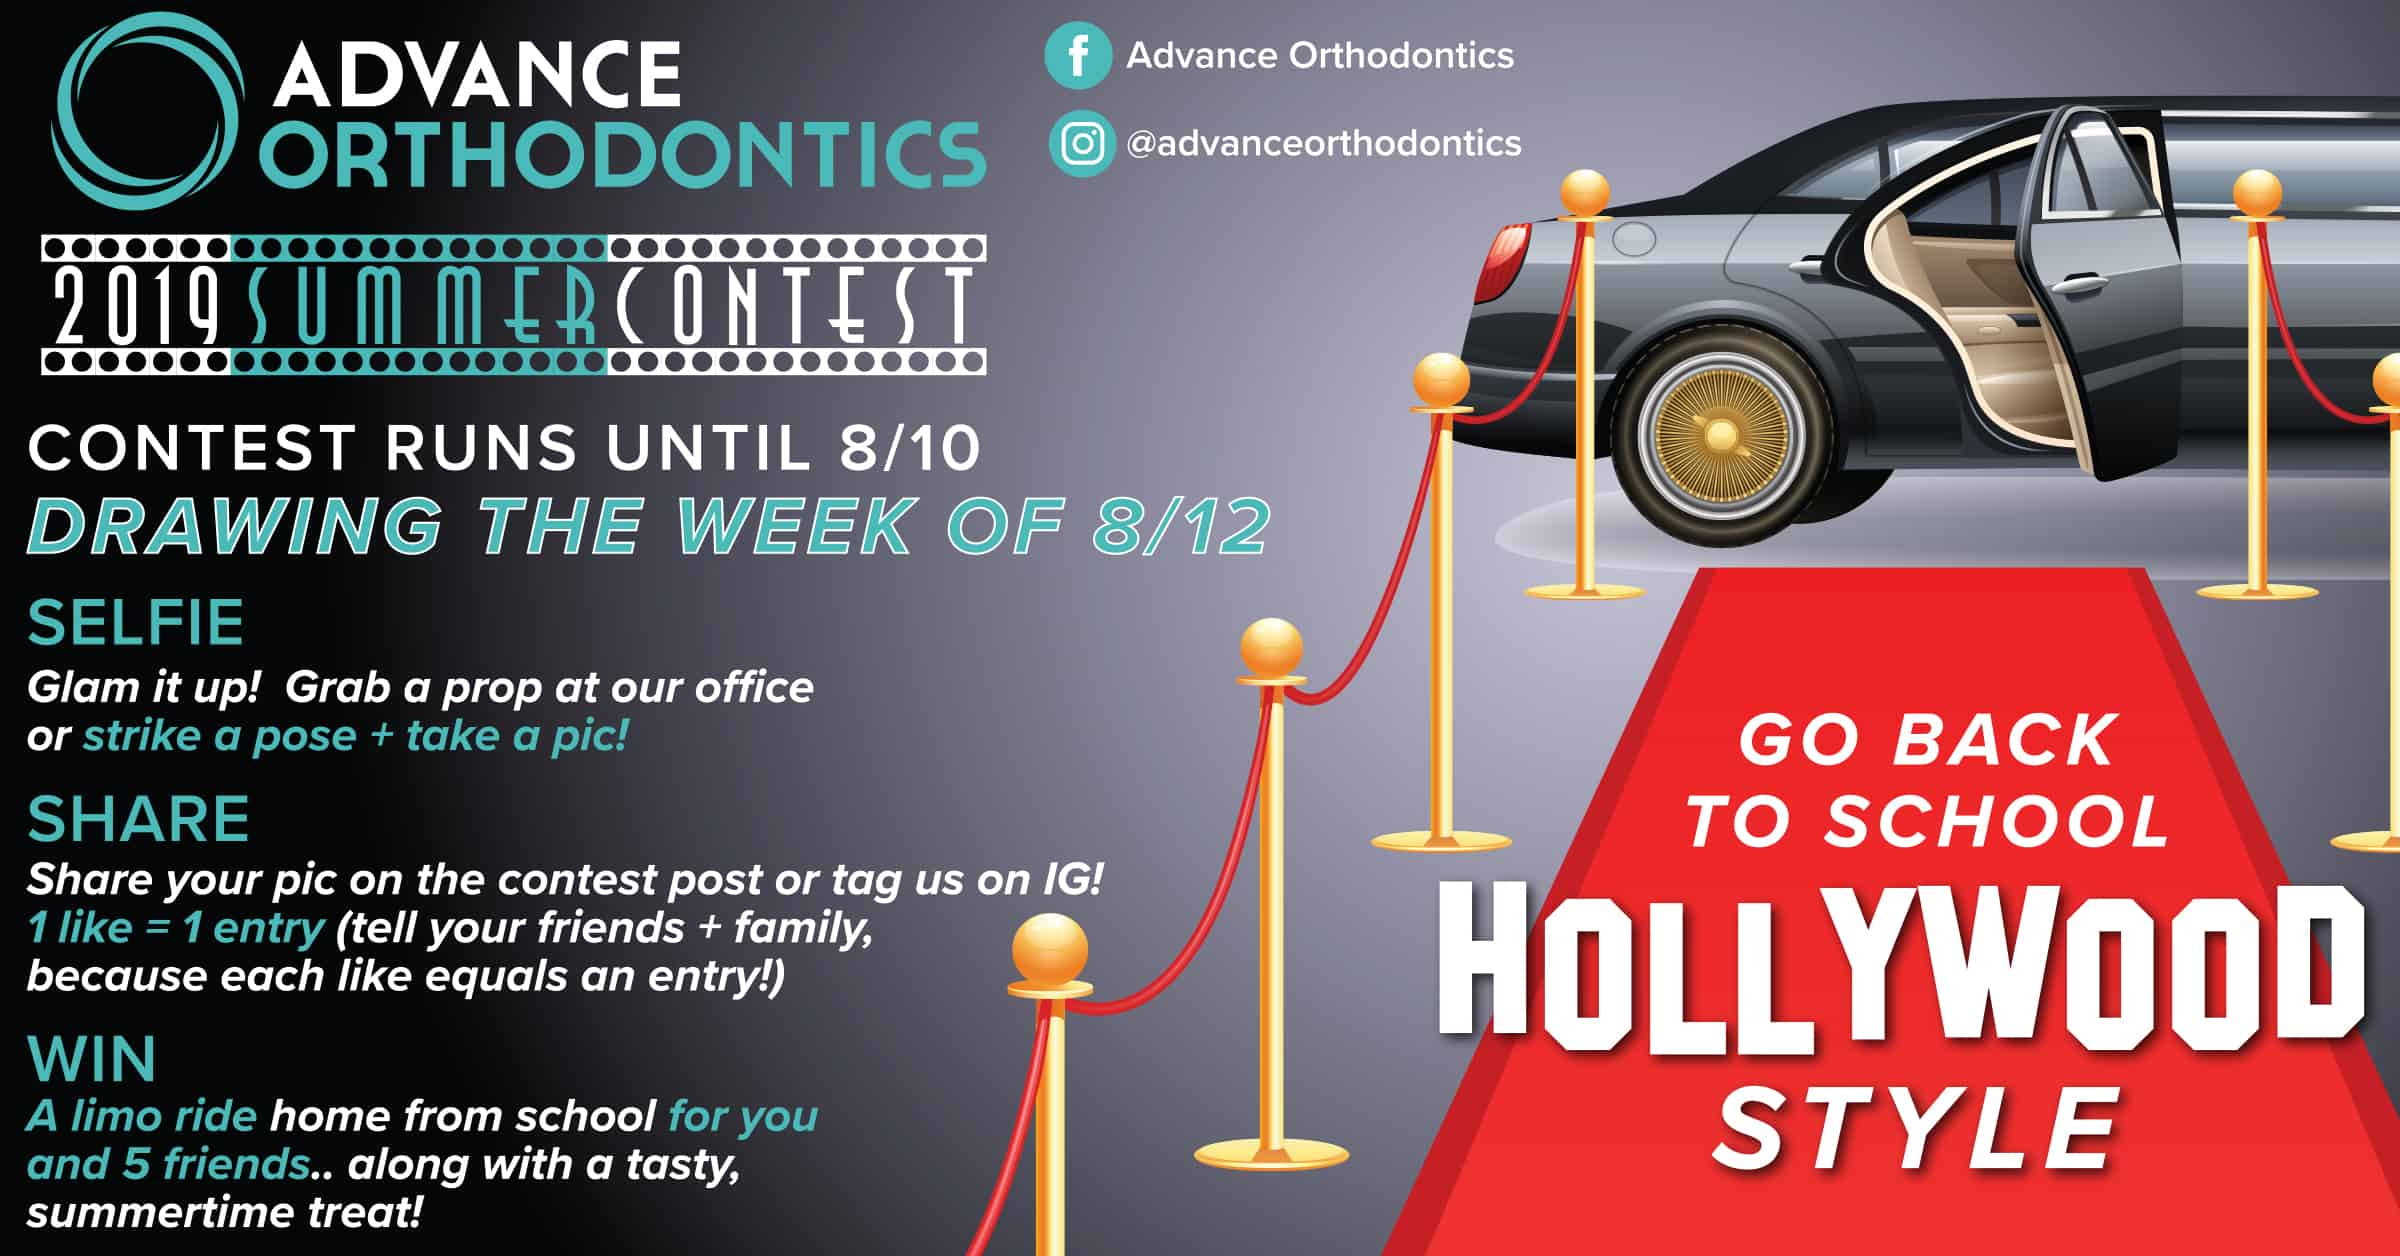 Advance_limo_1200x628_V3-copy Go Back to School — Hollywood Style!